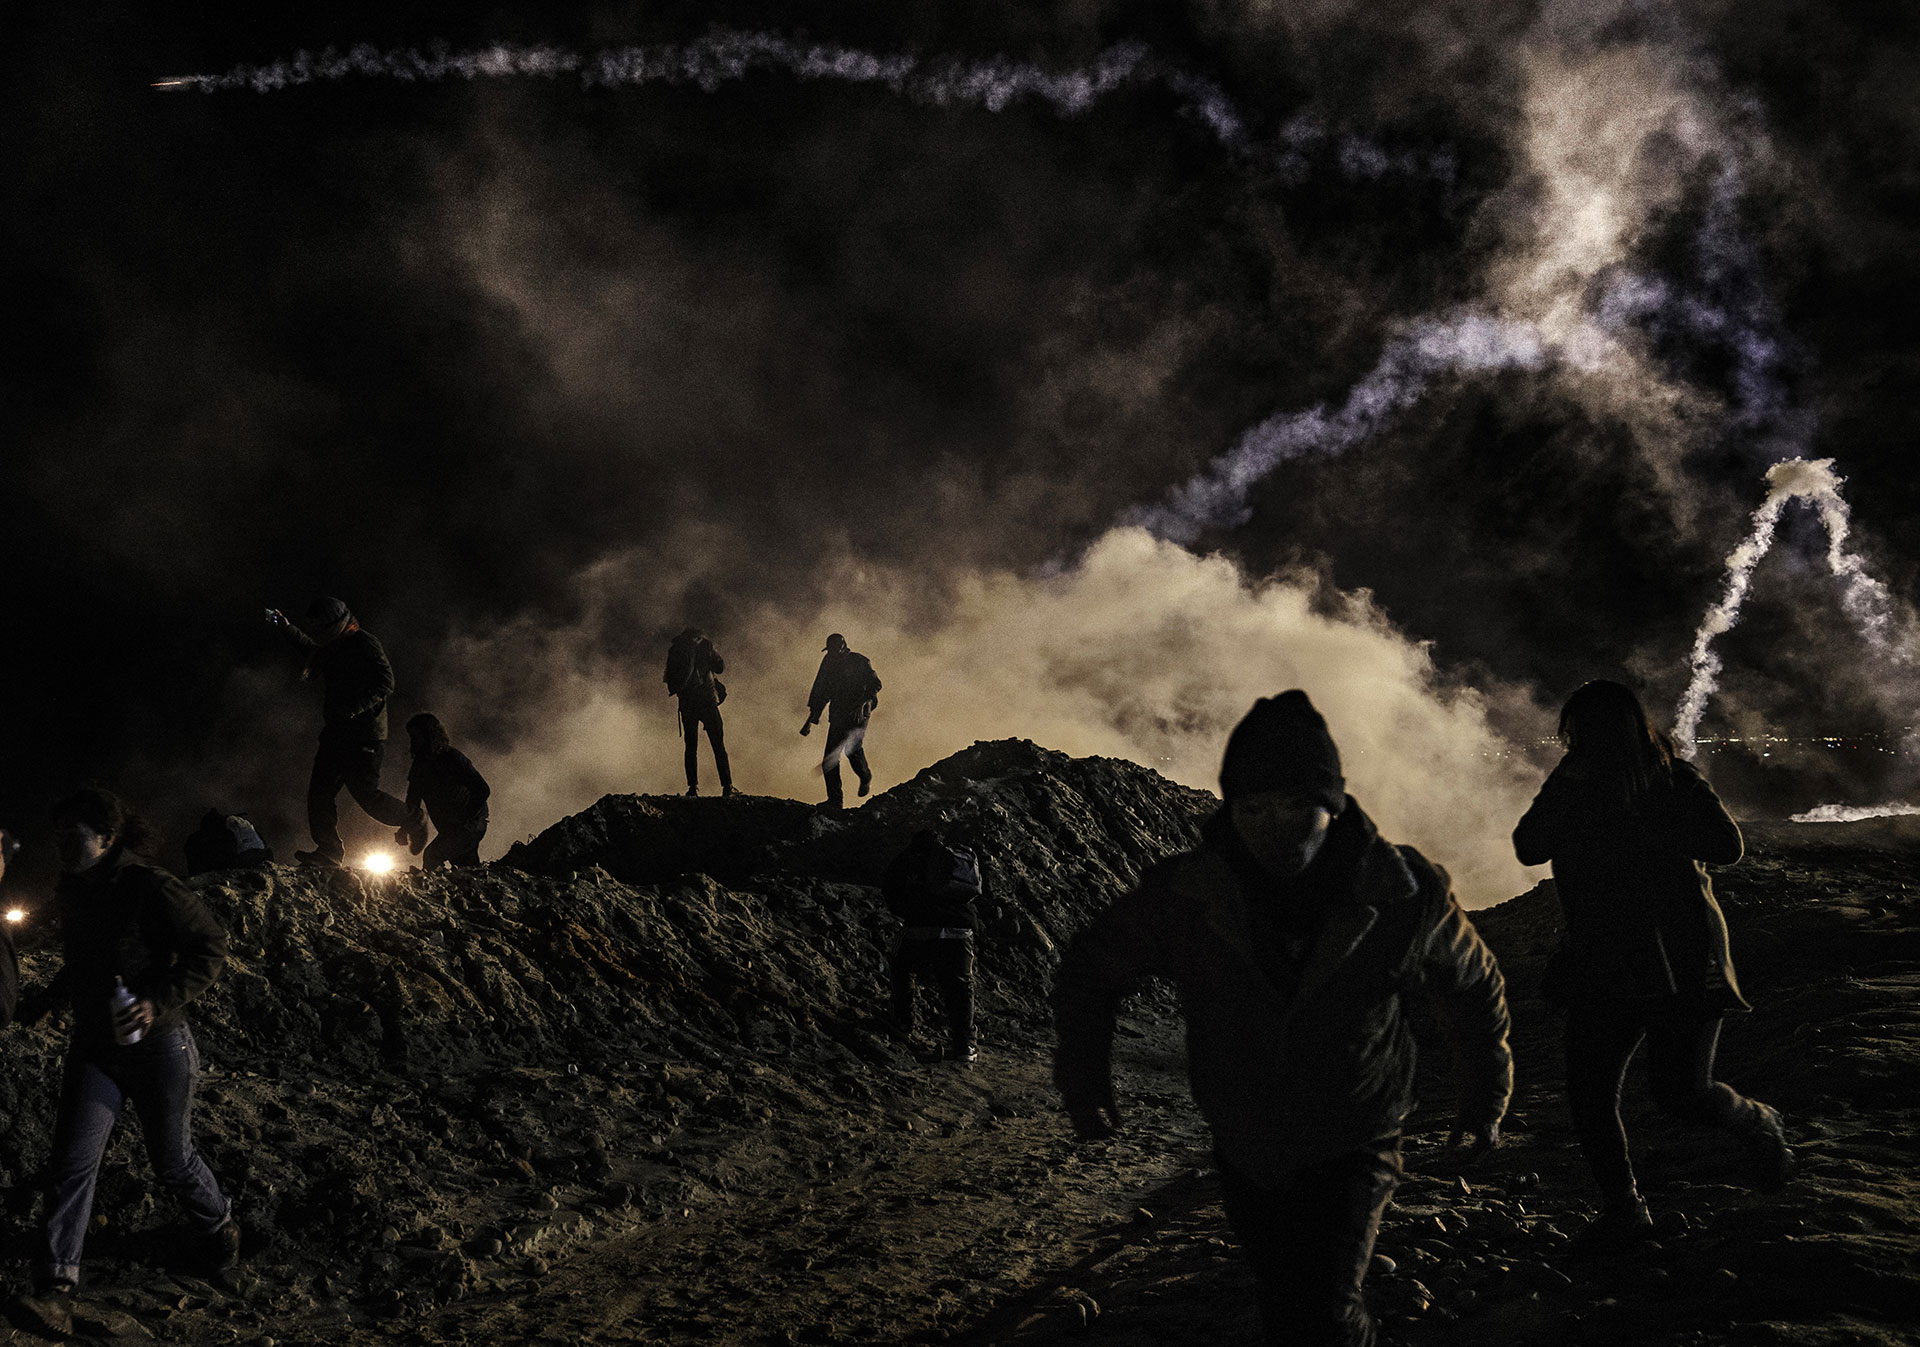 Migrants on the Mexican side of the wall in Tijuana run from teargas shot by U.S. Border Protection on 1 January 2019.